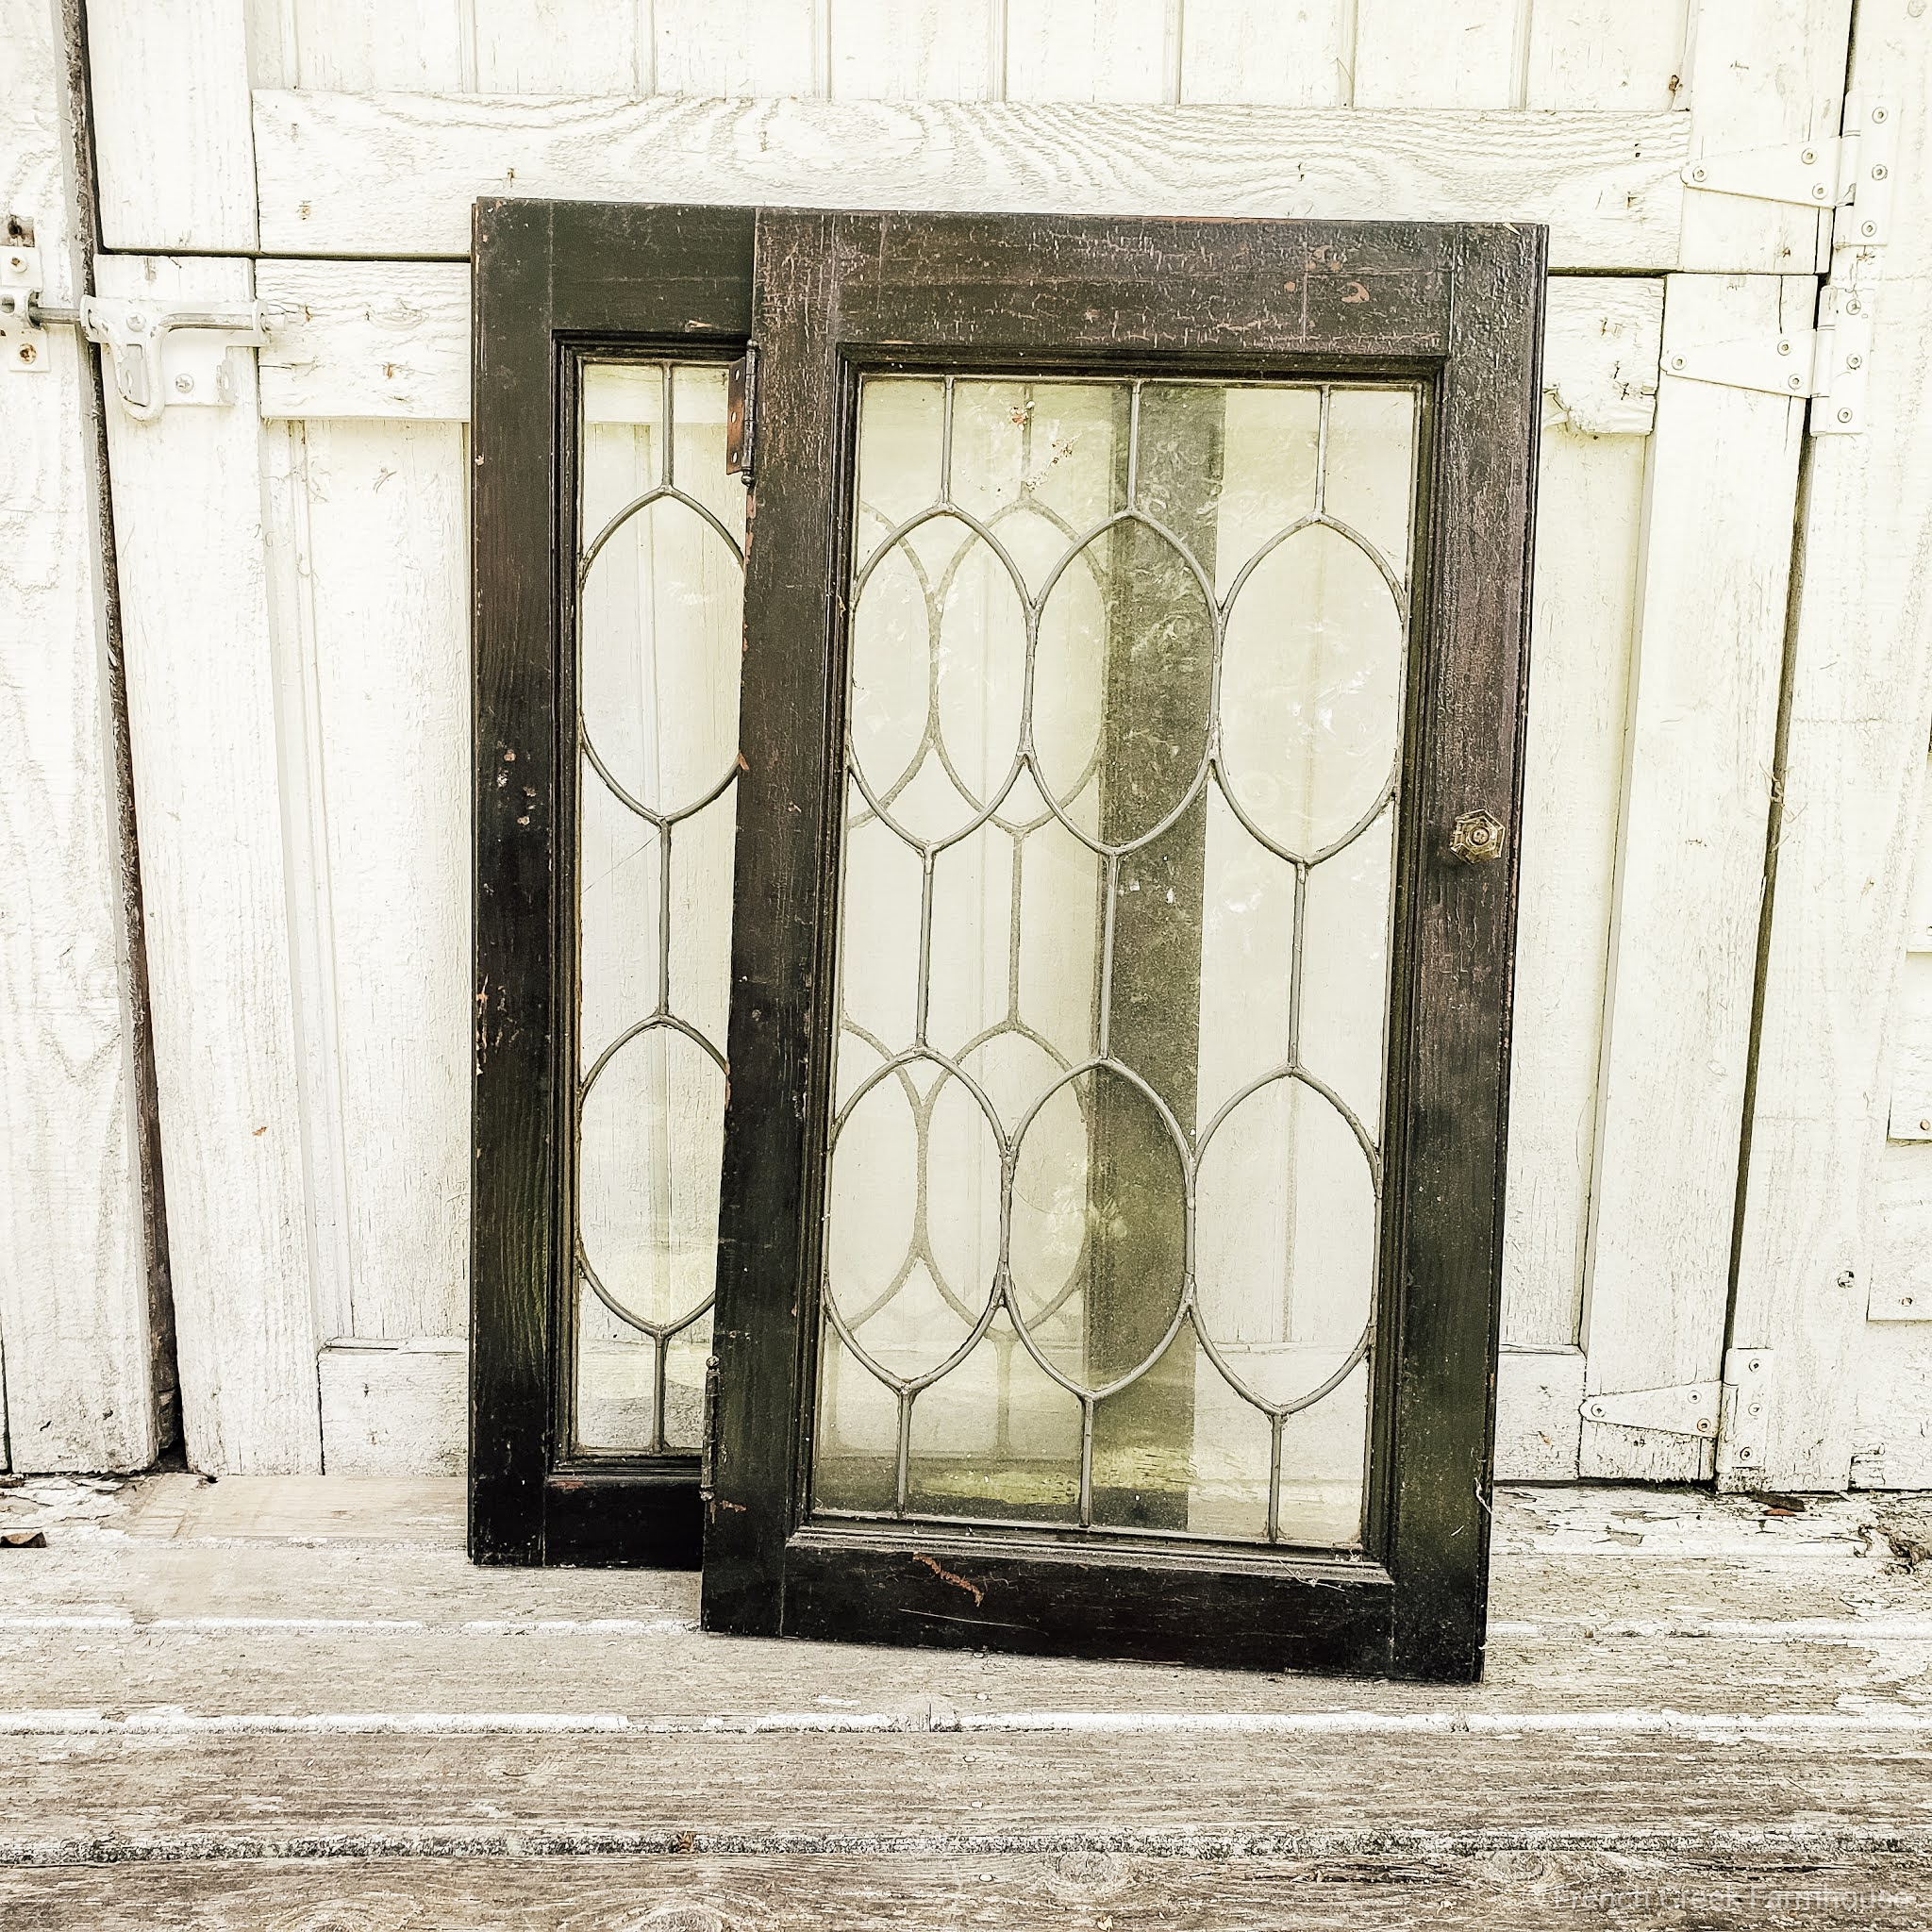 Old windows add a charming vintage aesthetic